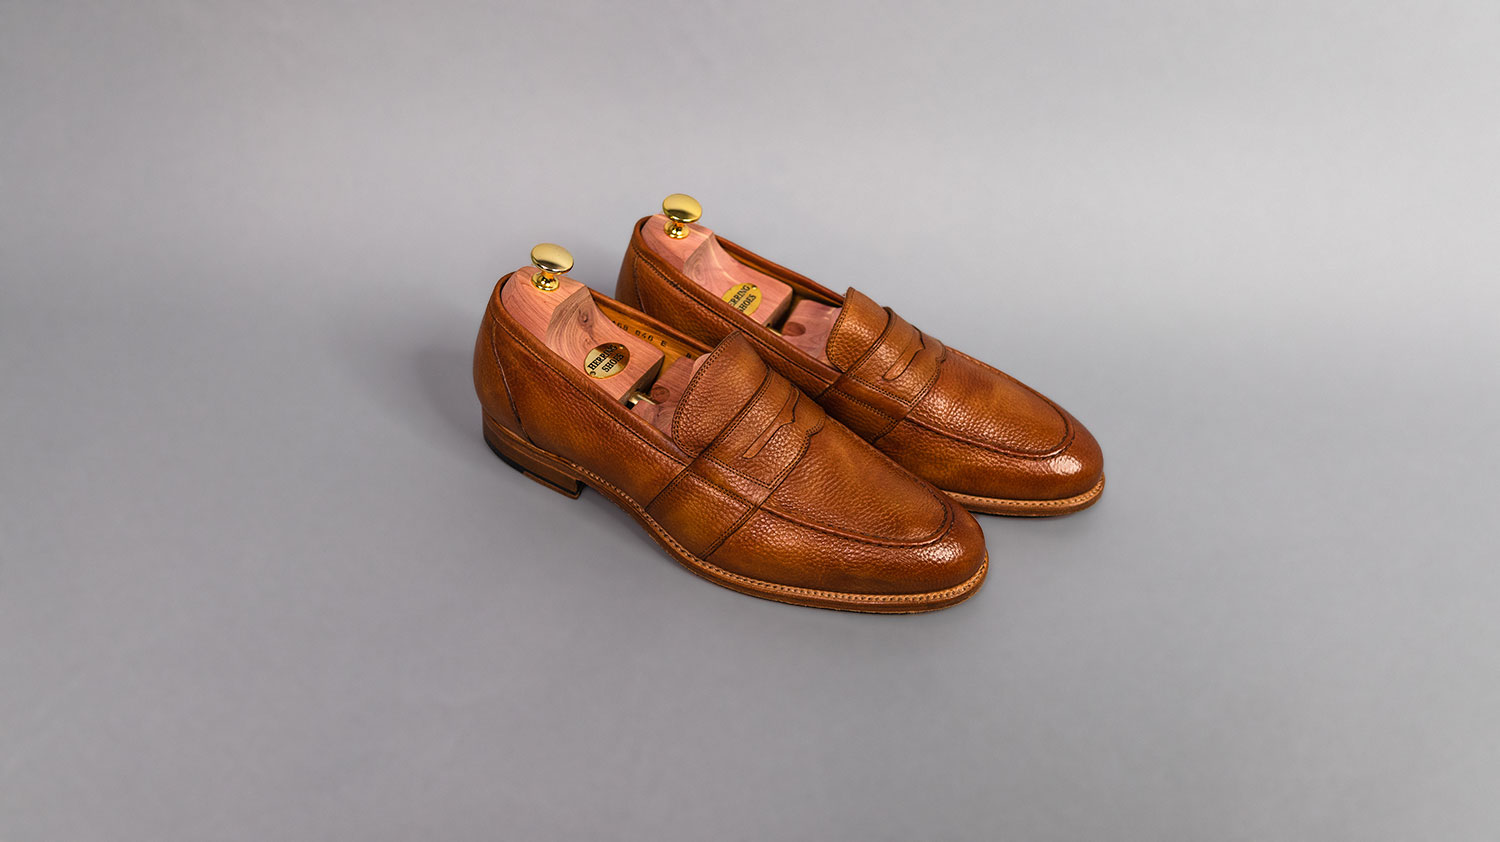 tan leather loafers from Herring on gray background